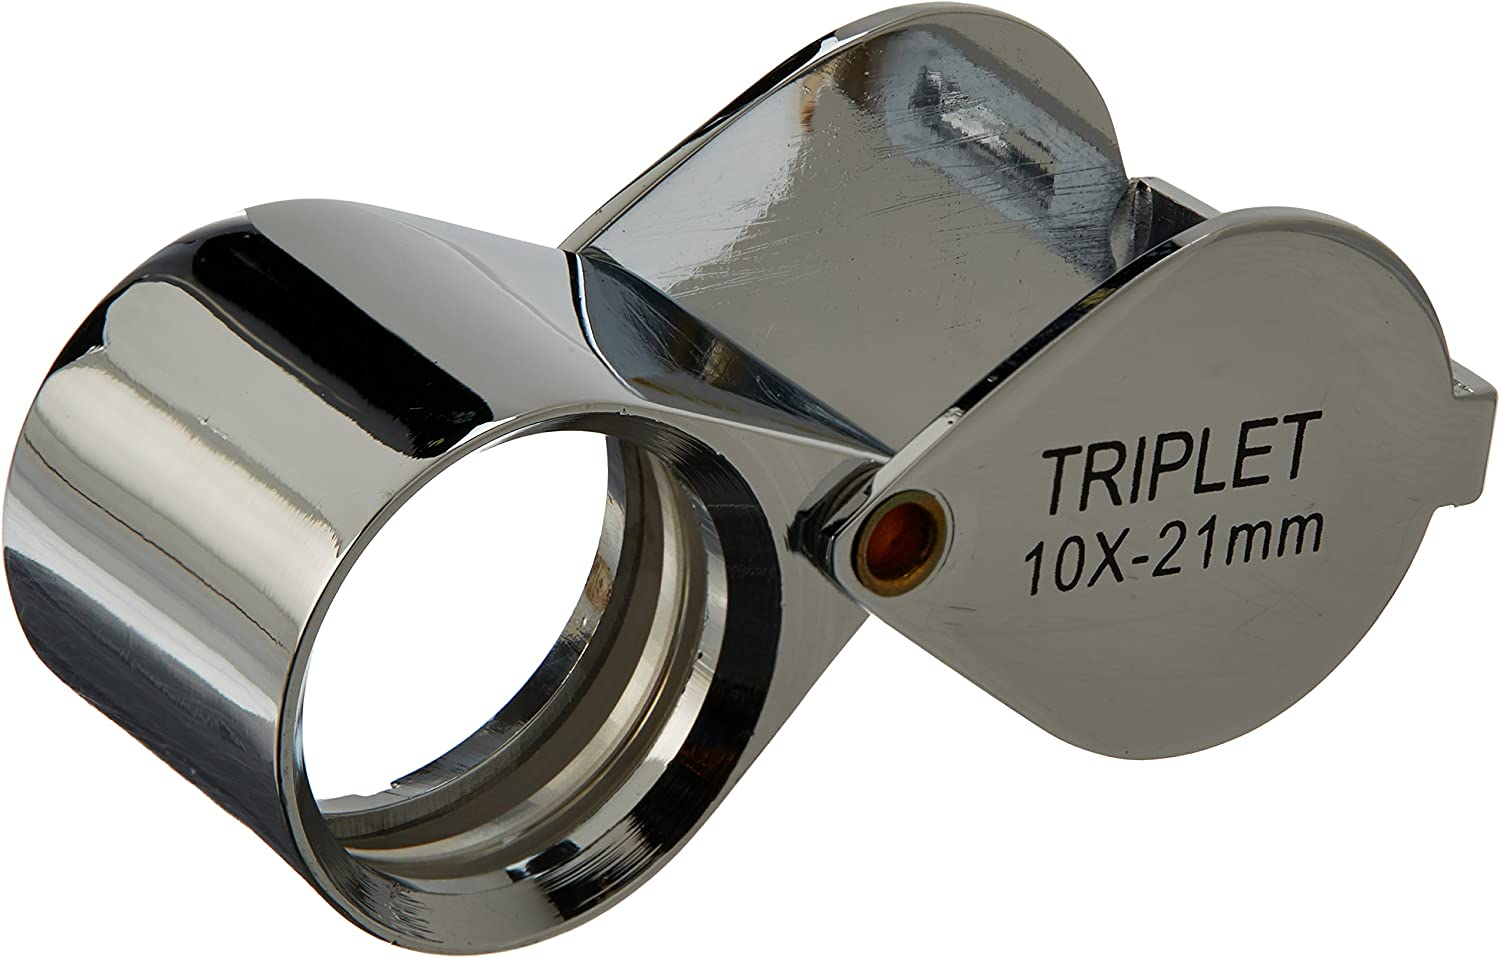 JEWELER/'S LOUPE TRIPLET 10x-18mm